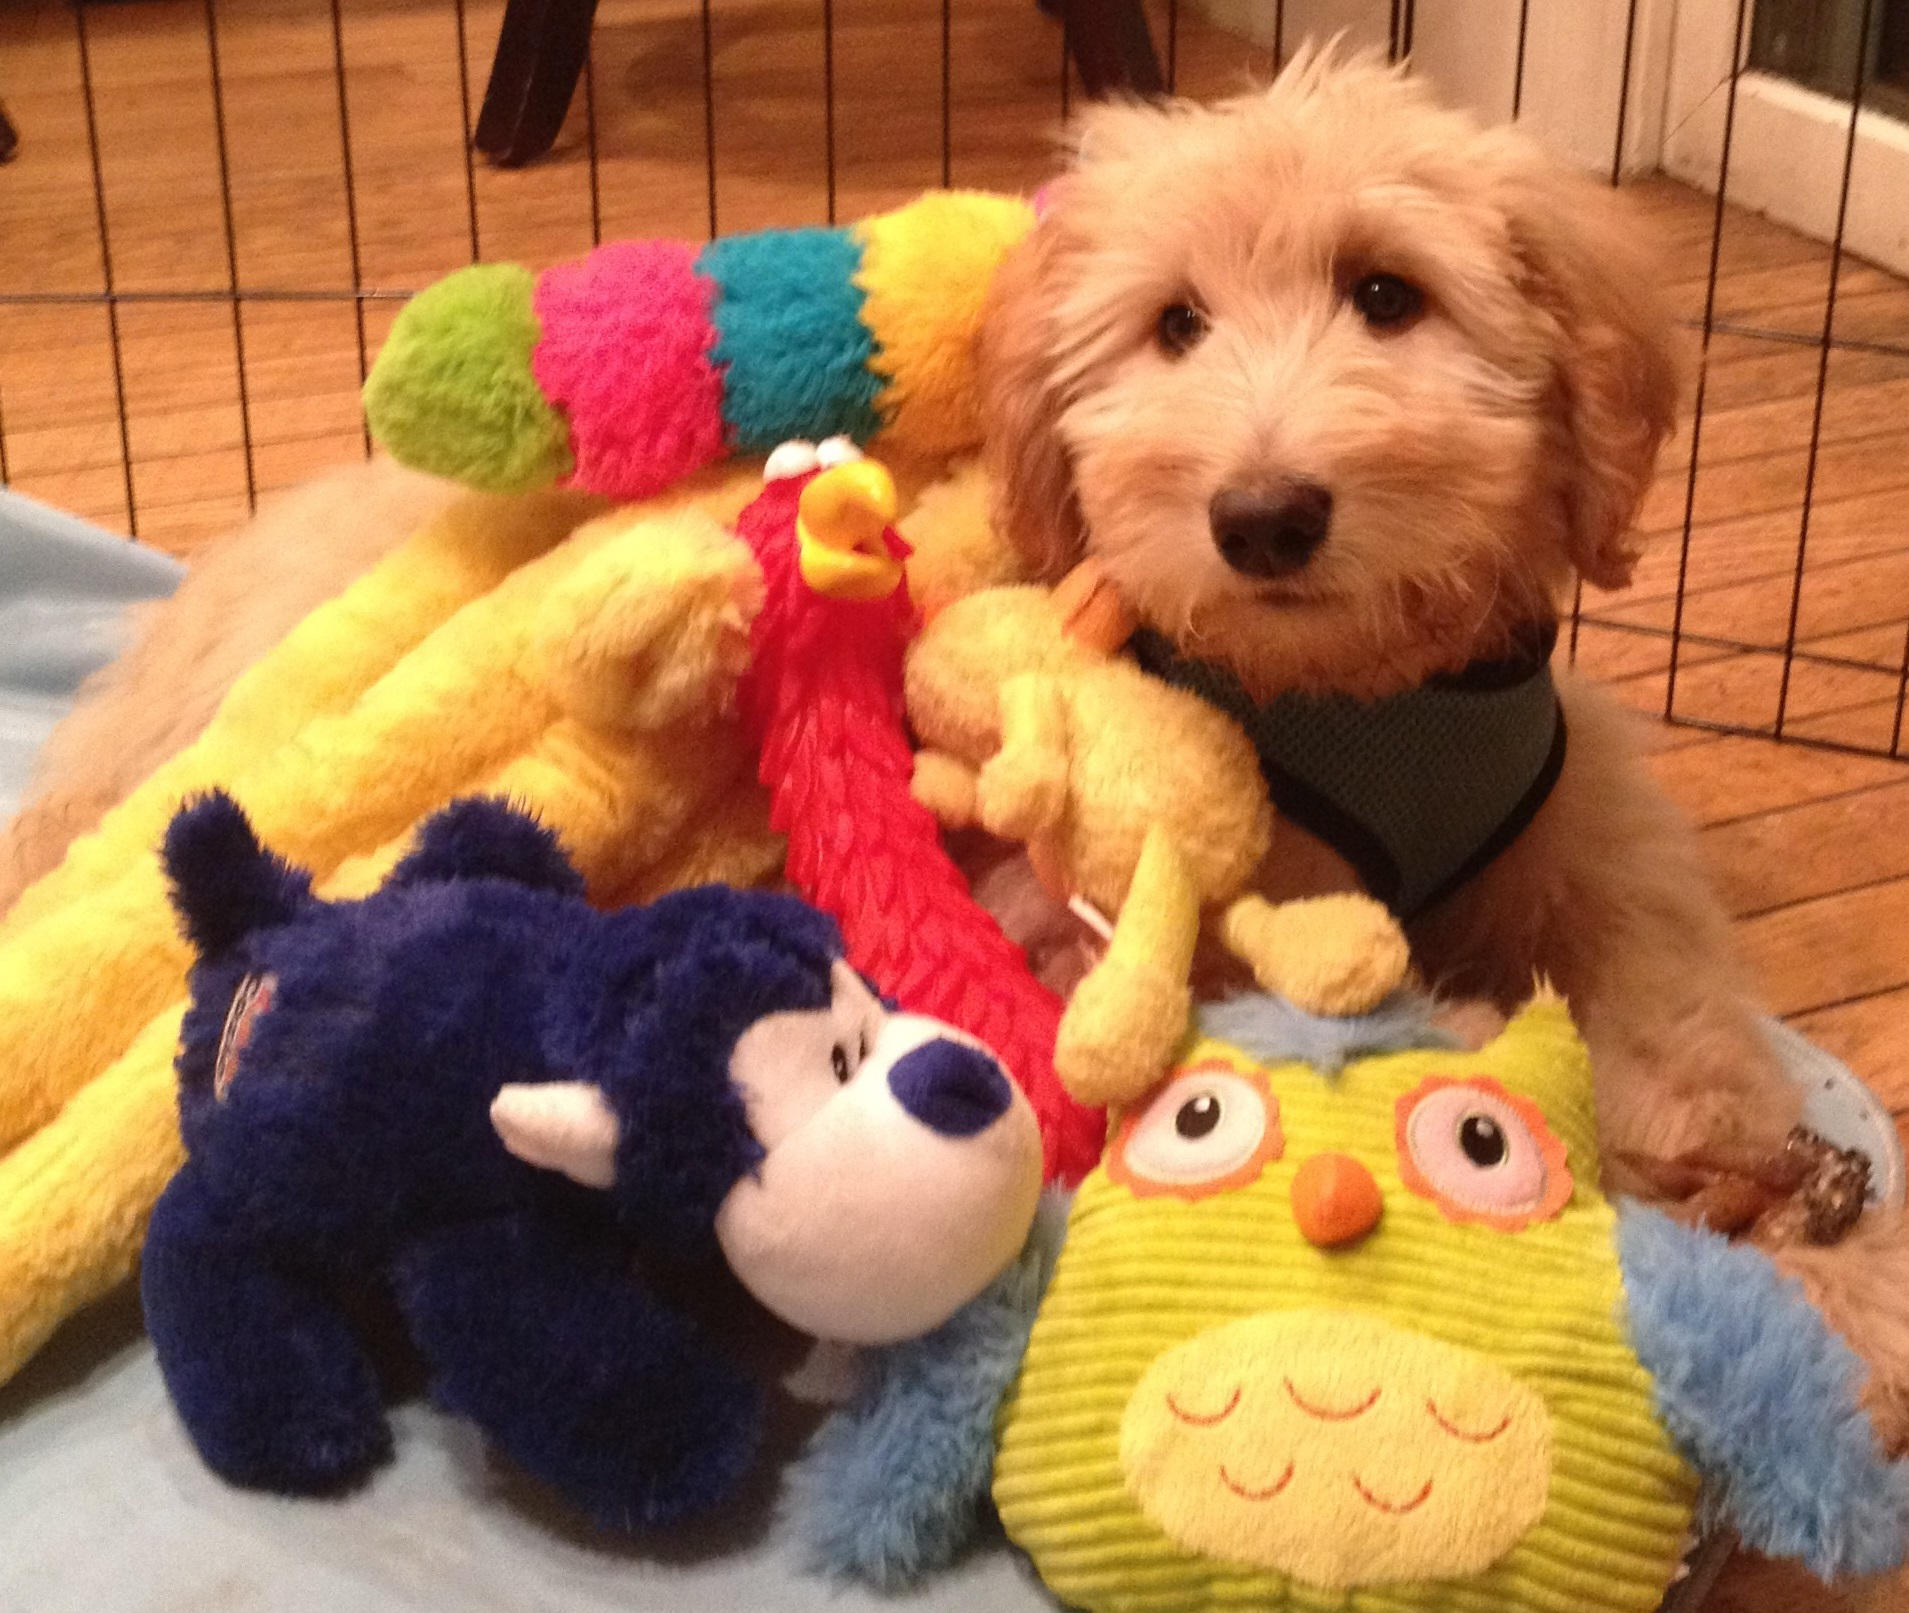 A puppy dog covered in stuffed animal-the puppy dog close in the sales process